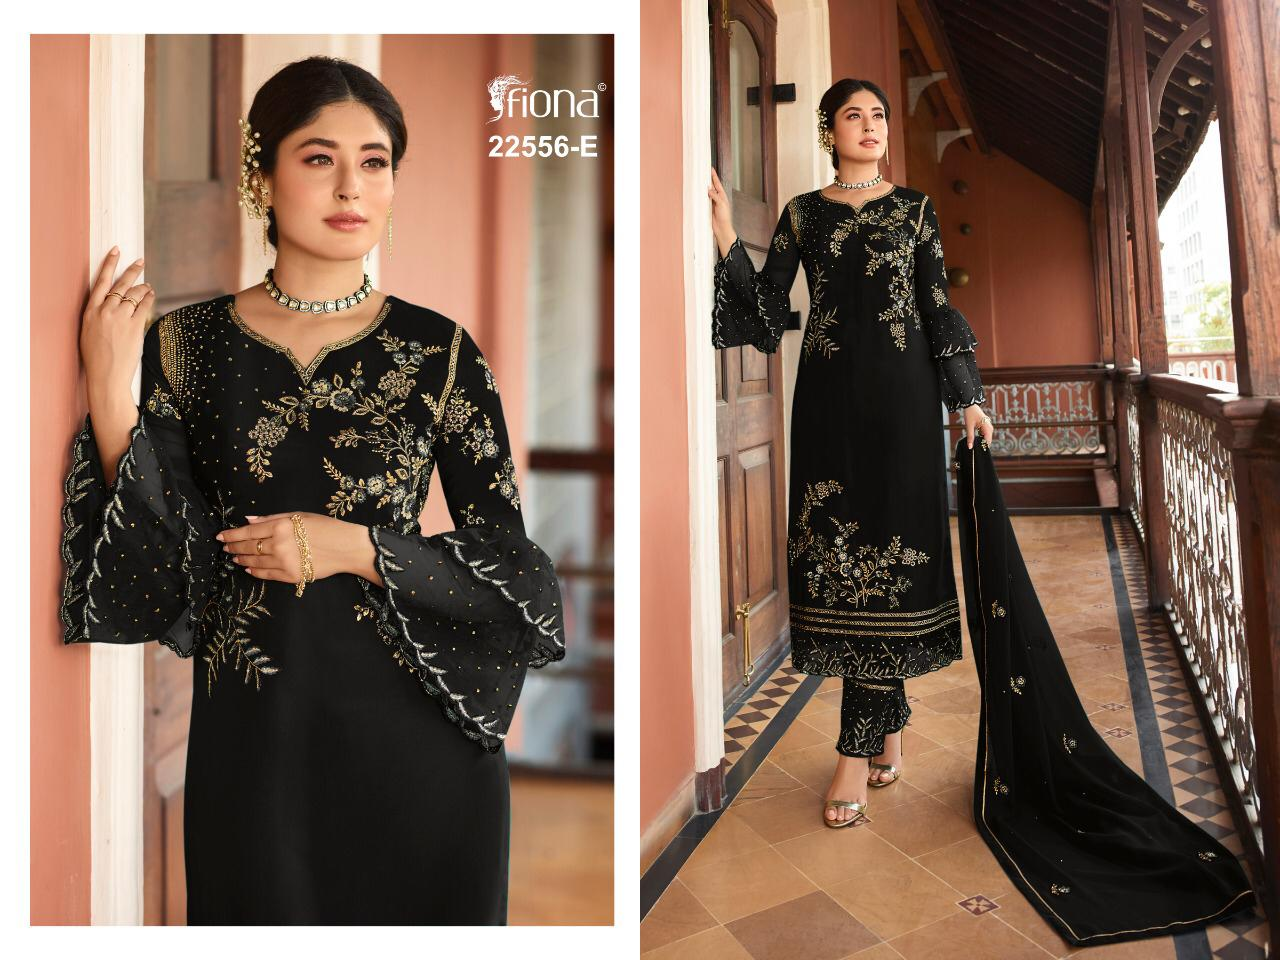 Thankar Flona Heavy Rangoli Silk With Embroidery Wedding Salwar Suit Catalog at Wholesale rate